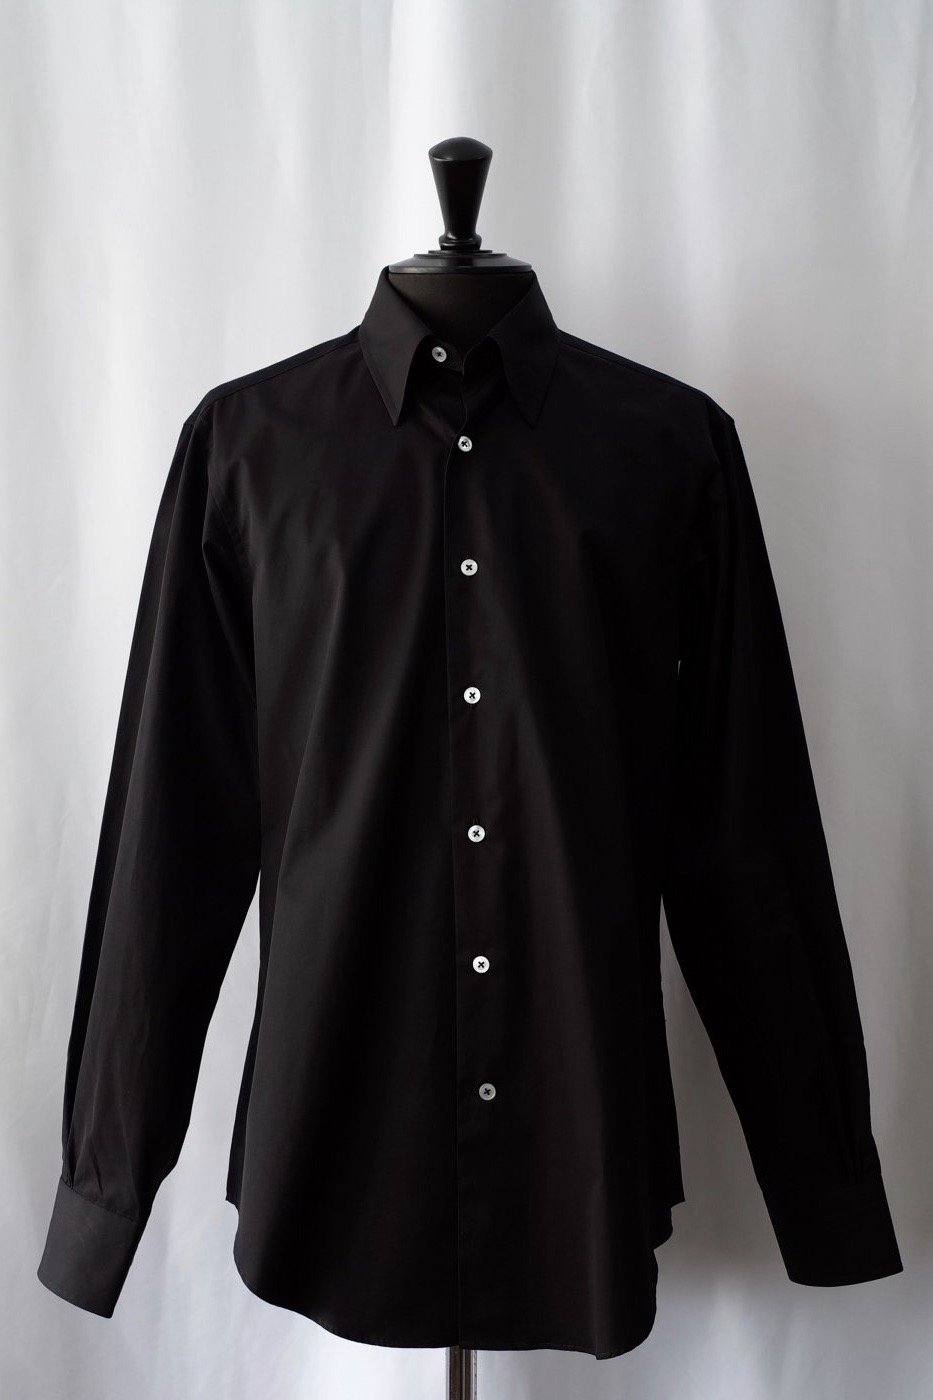 APPLETREES アップルトゥリーズ-TOMORROWS STD SHIRT-BLACK-